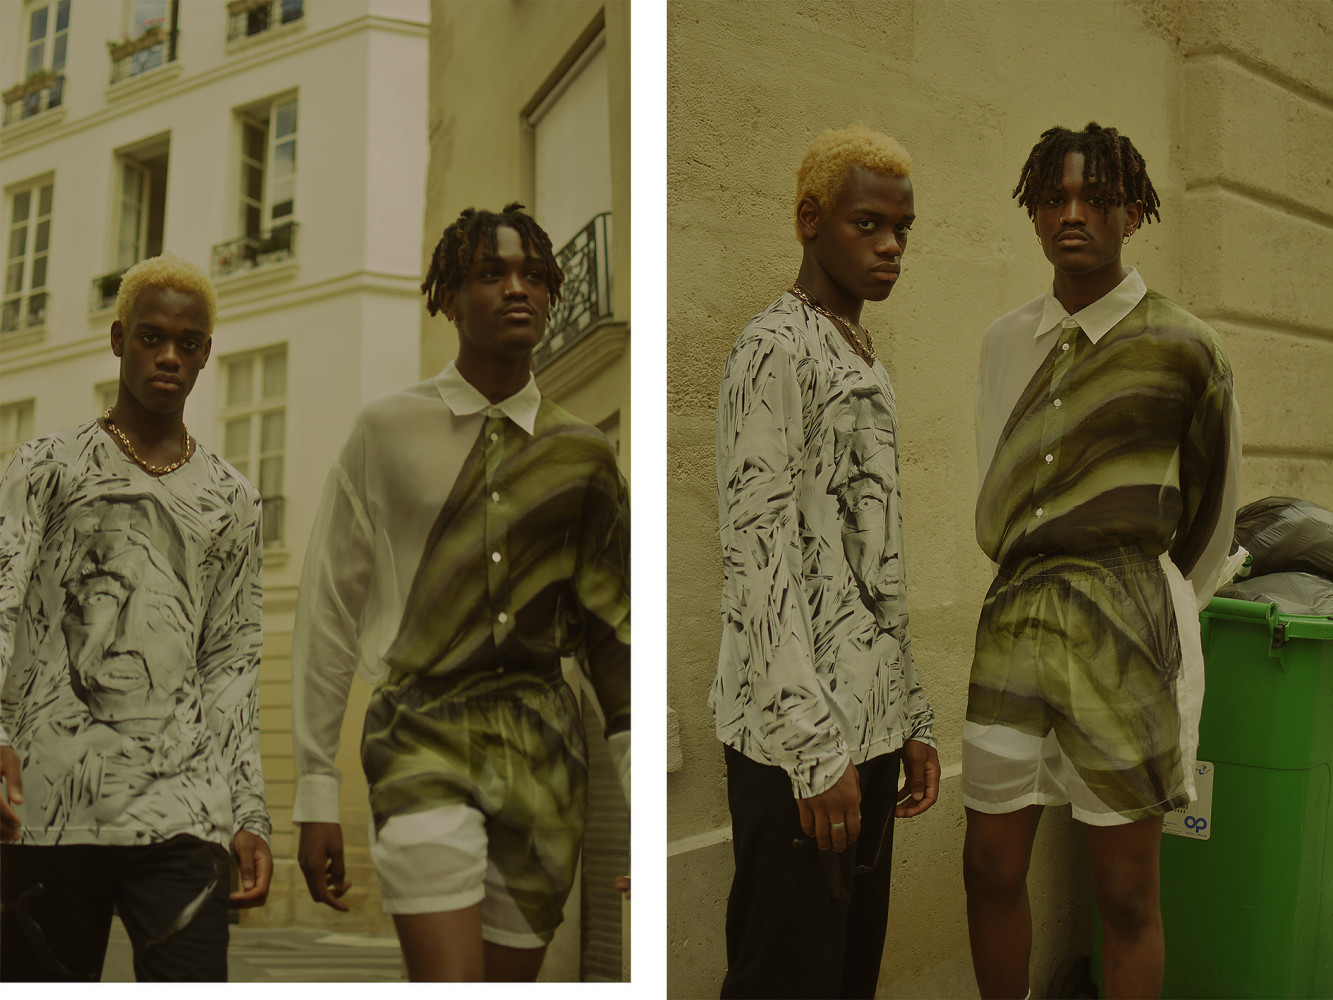 RODRIGUE, YVENS & KEVIN FOR FWORD MAGAZINE